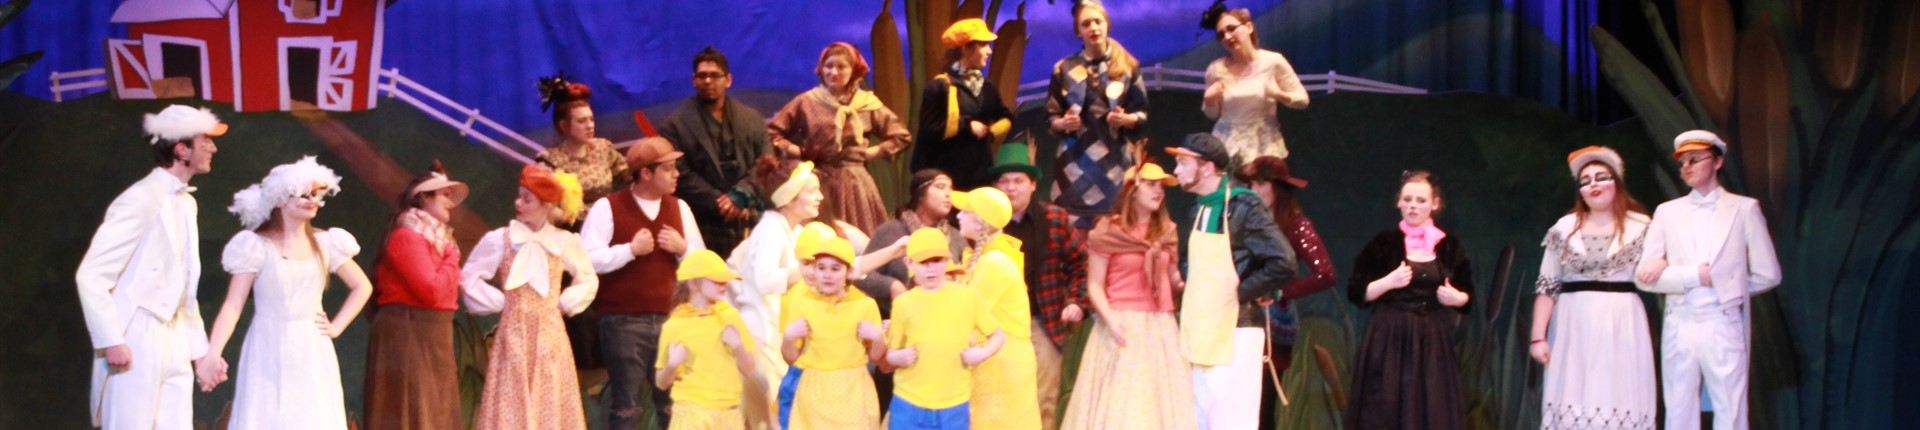 A scene from the recent play presented by Bourbon County Schools, Honk!